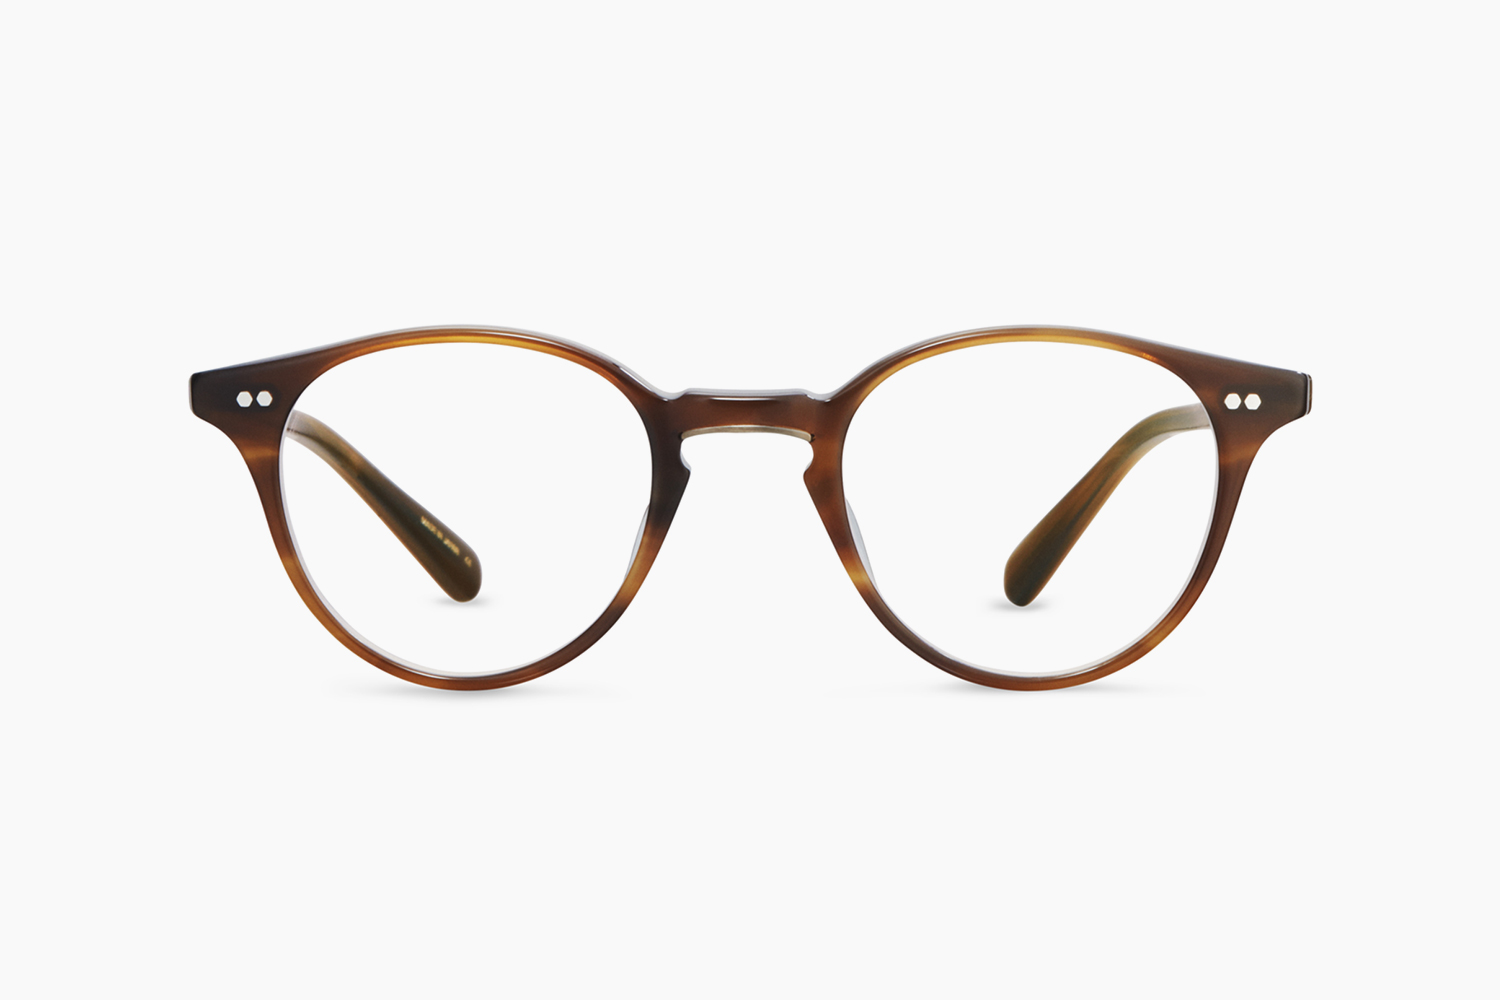 MARMONT C - BEACHWOOD|Mr. Leight